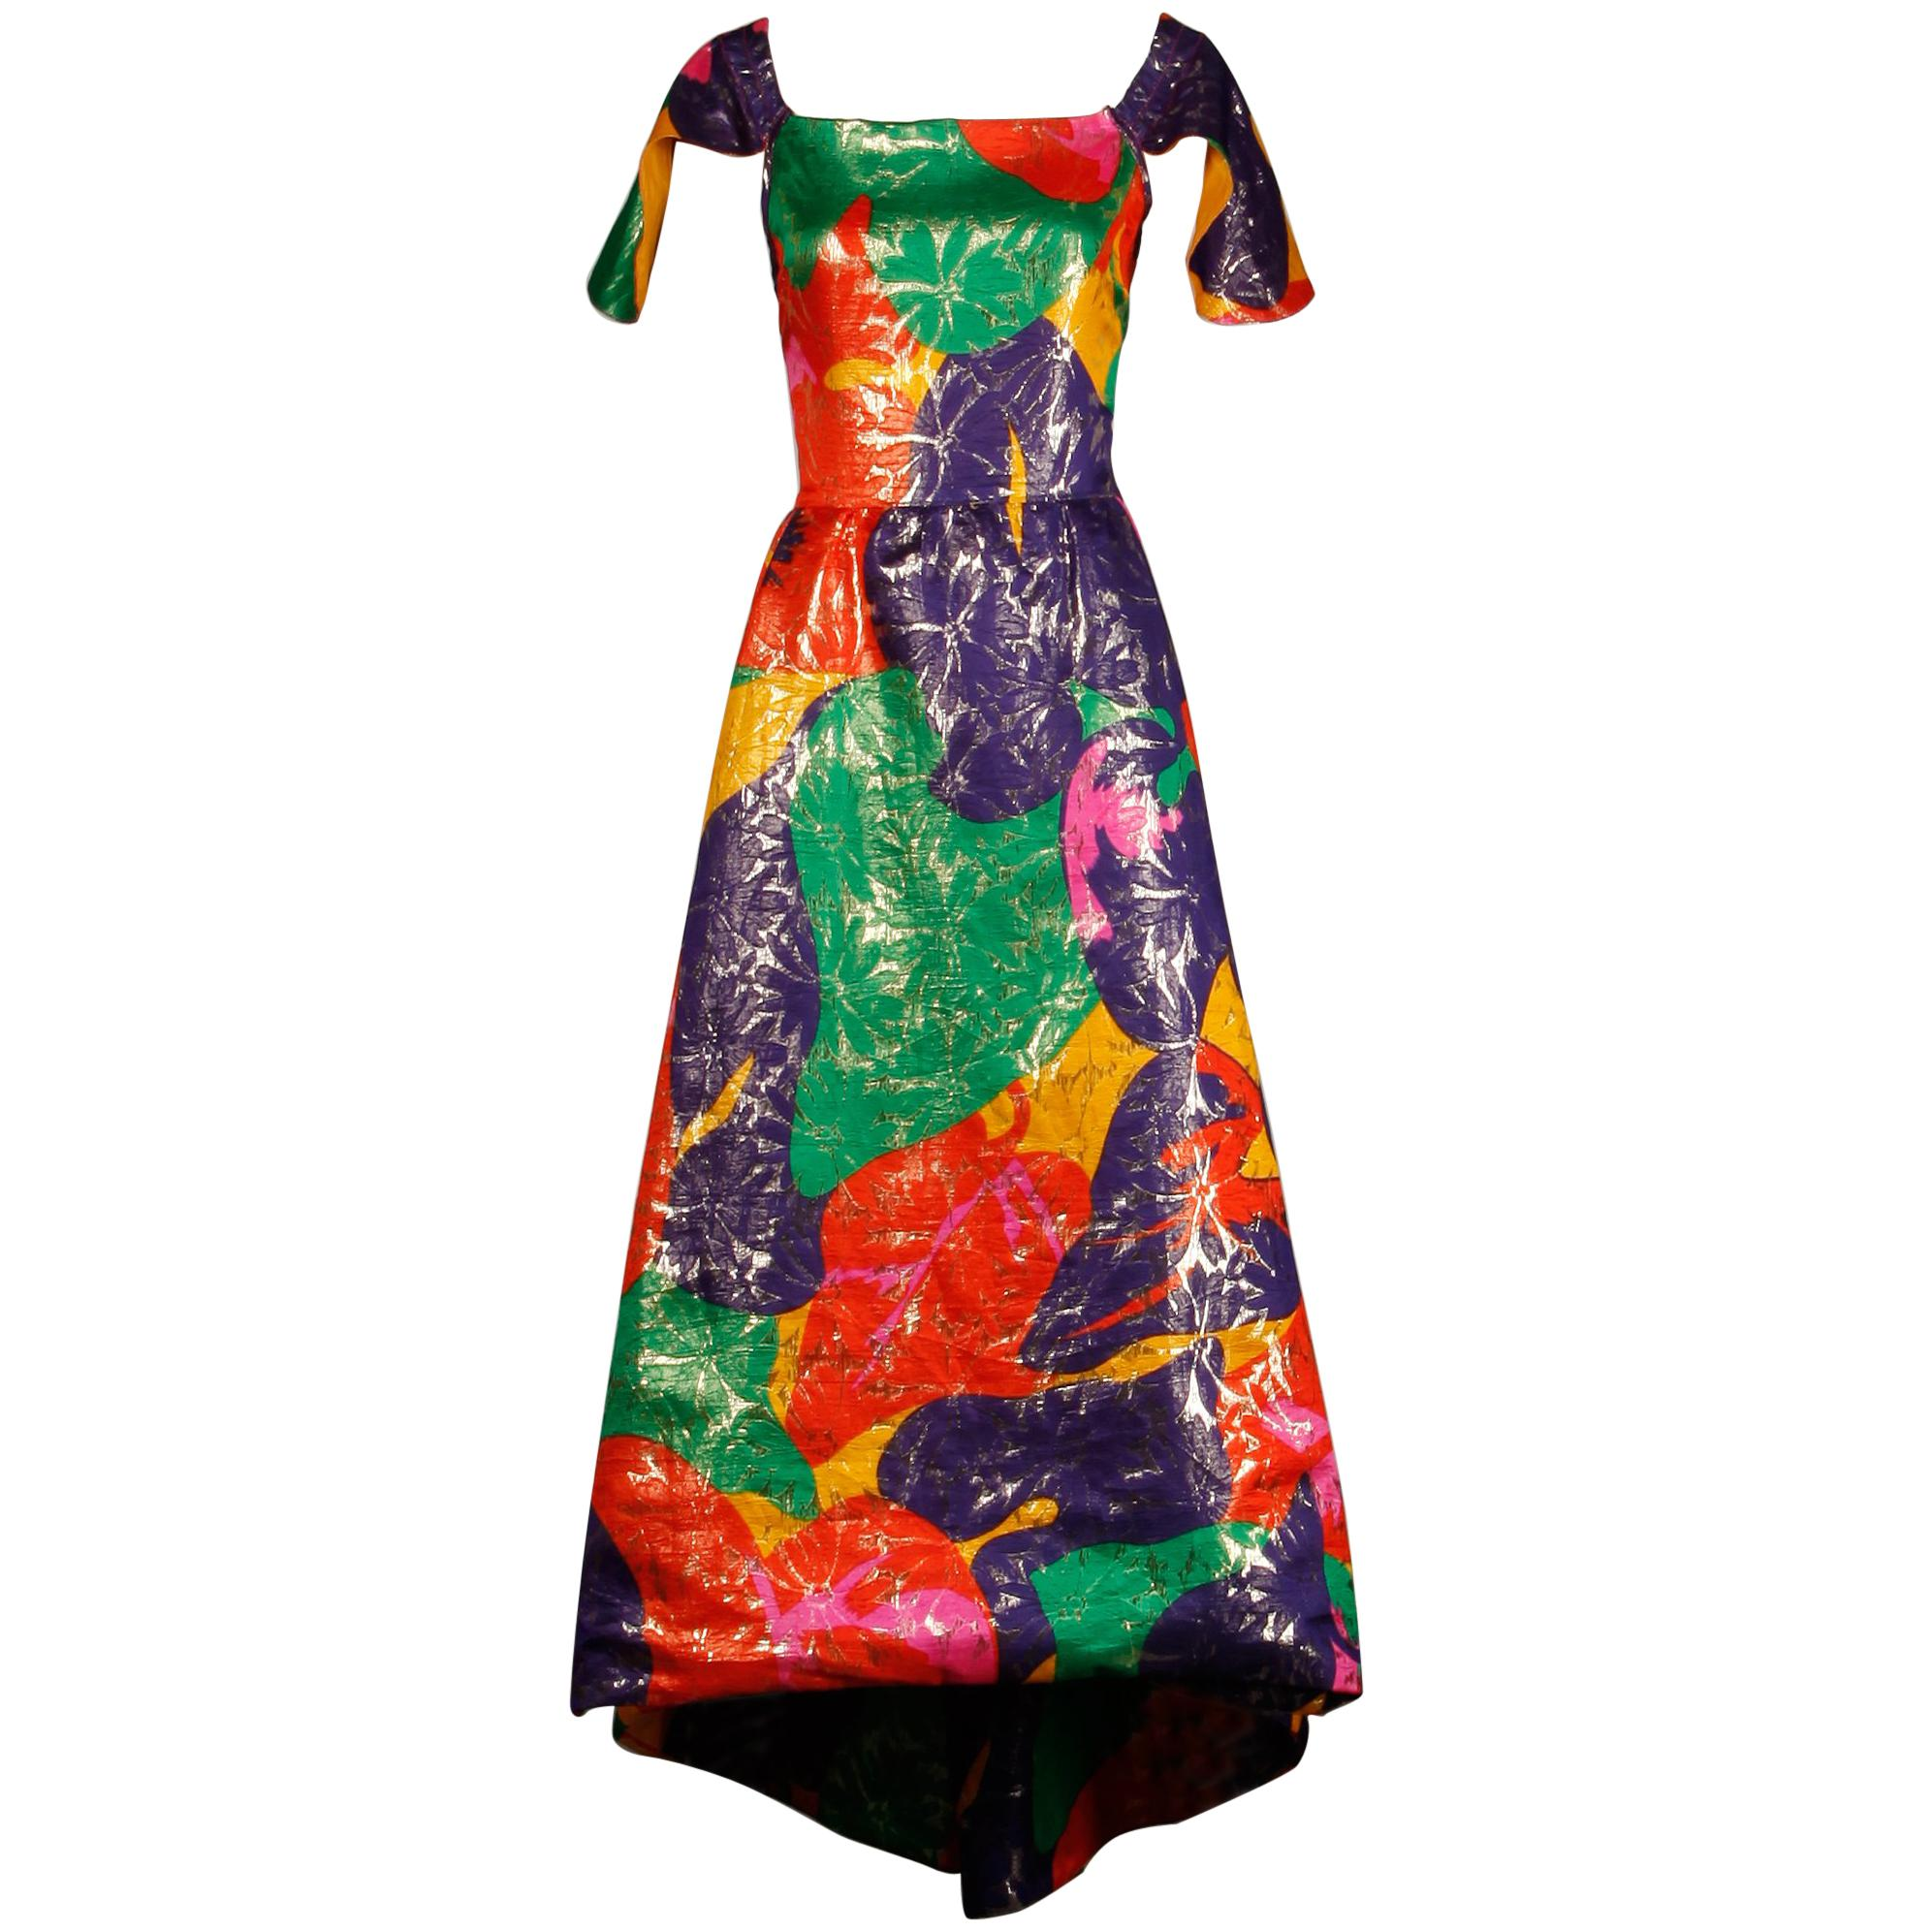 Arnold Scaasi Vintage Colorful Metallic Lamé Silk Evening Gown Dress, 1970s